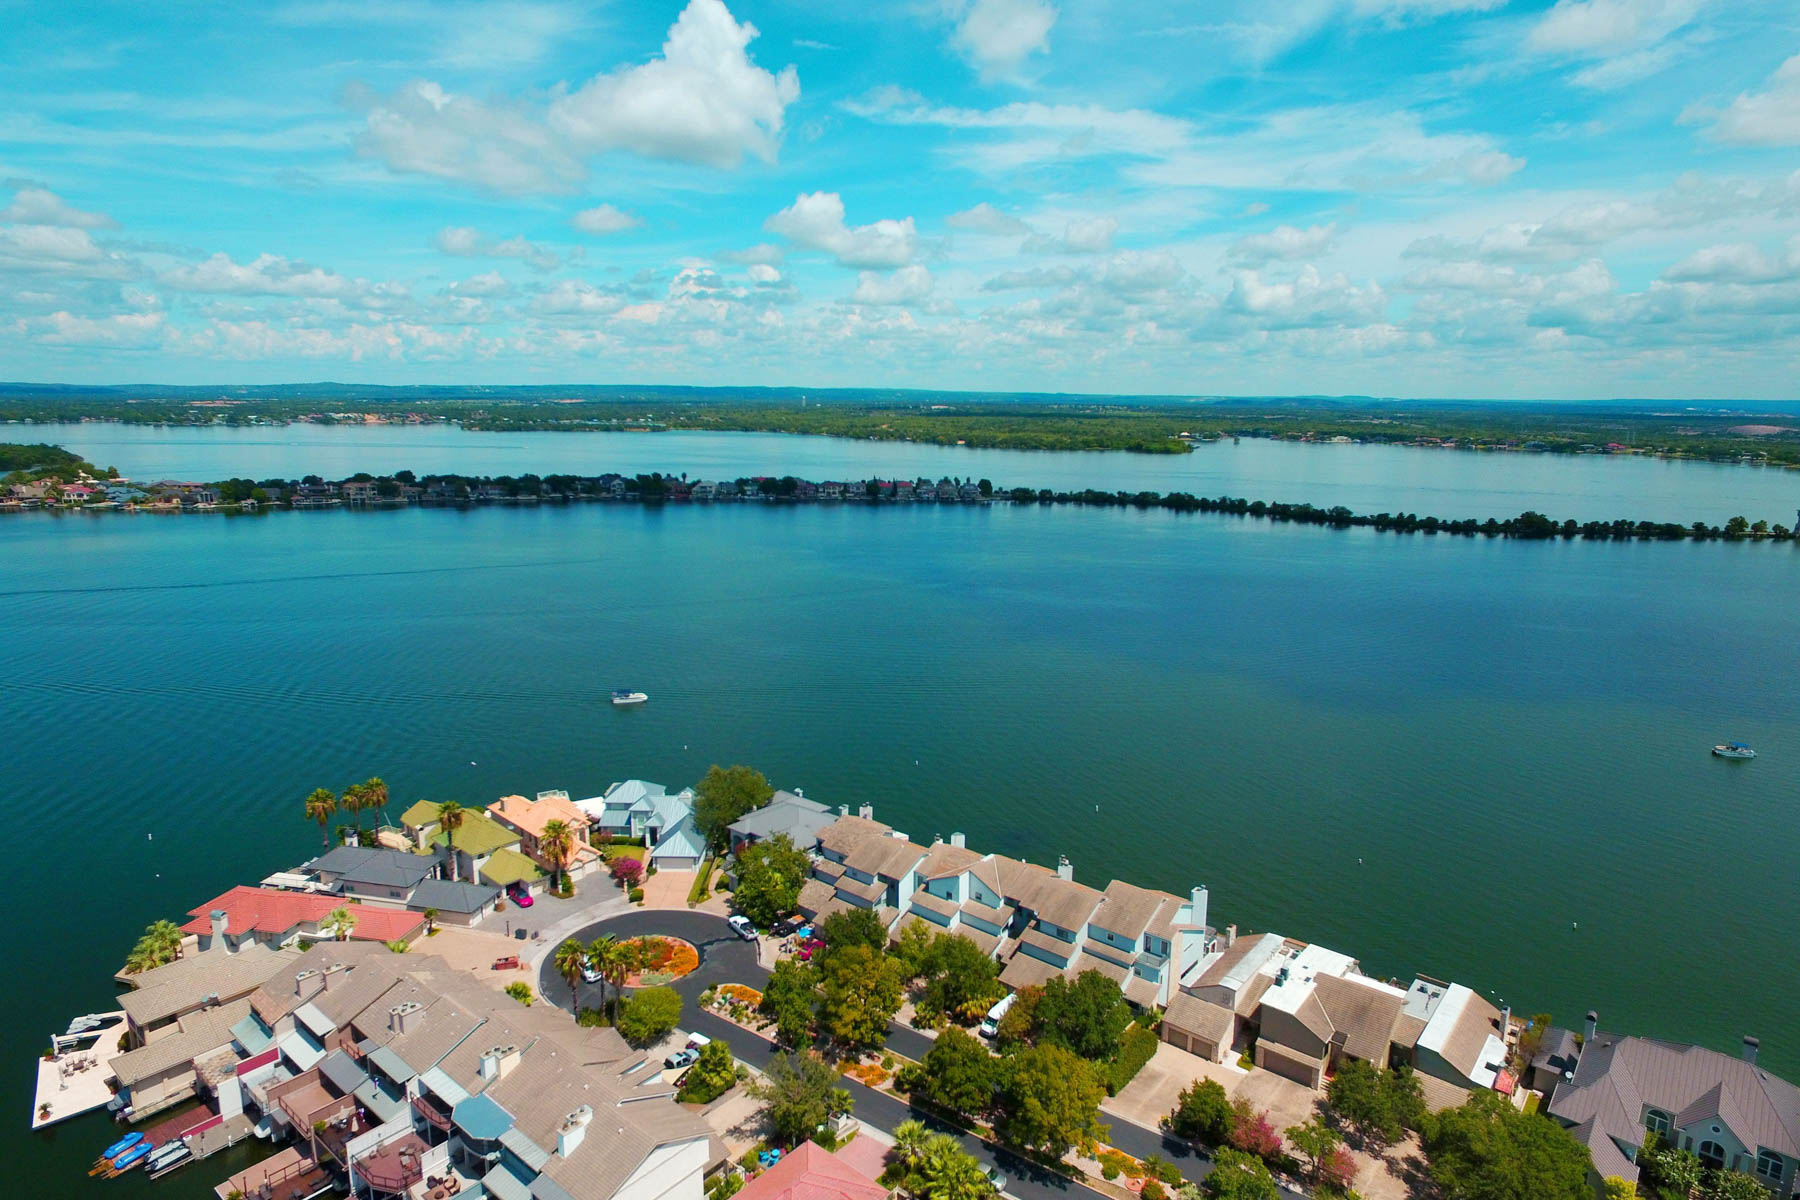 Casa unifamiliar adosada (Townhouse) por un Venta en Lake LBJ Waterfront Townhouse on The Cape 1301 The Cape 3 Horseshoe Bay, Texas 78657 Estados Unidos